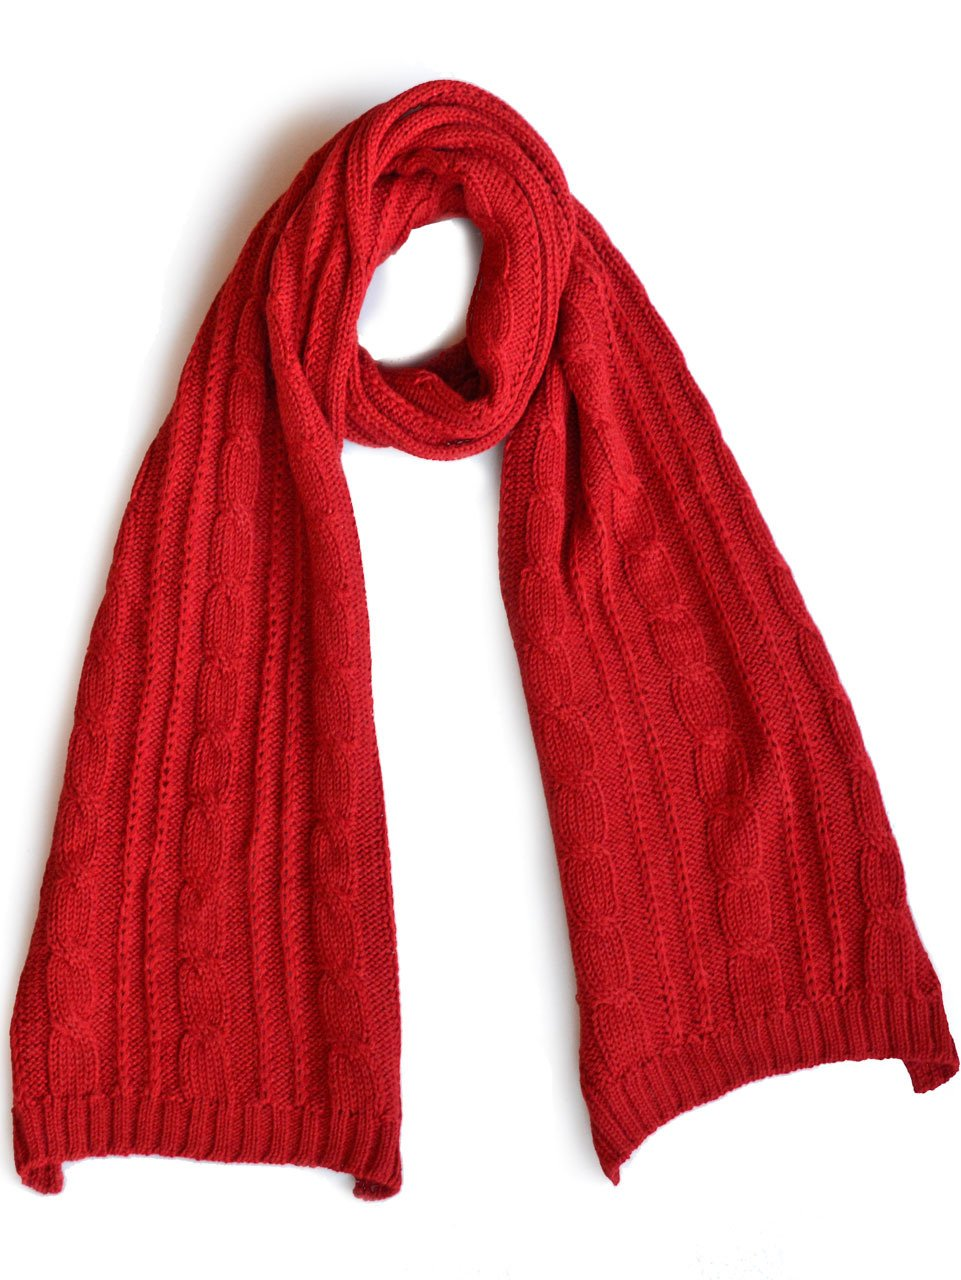 Oversized Cable Knit 100% Baby Alpaca Men and Women in Red by Incredible Natural Creations from Alpaca - INCA Brands